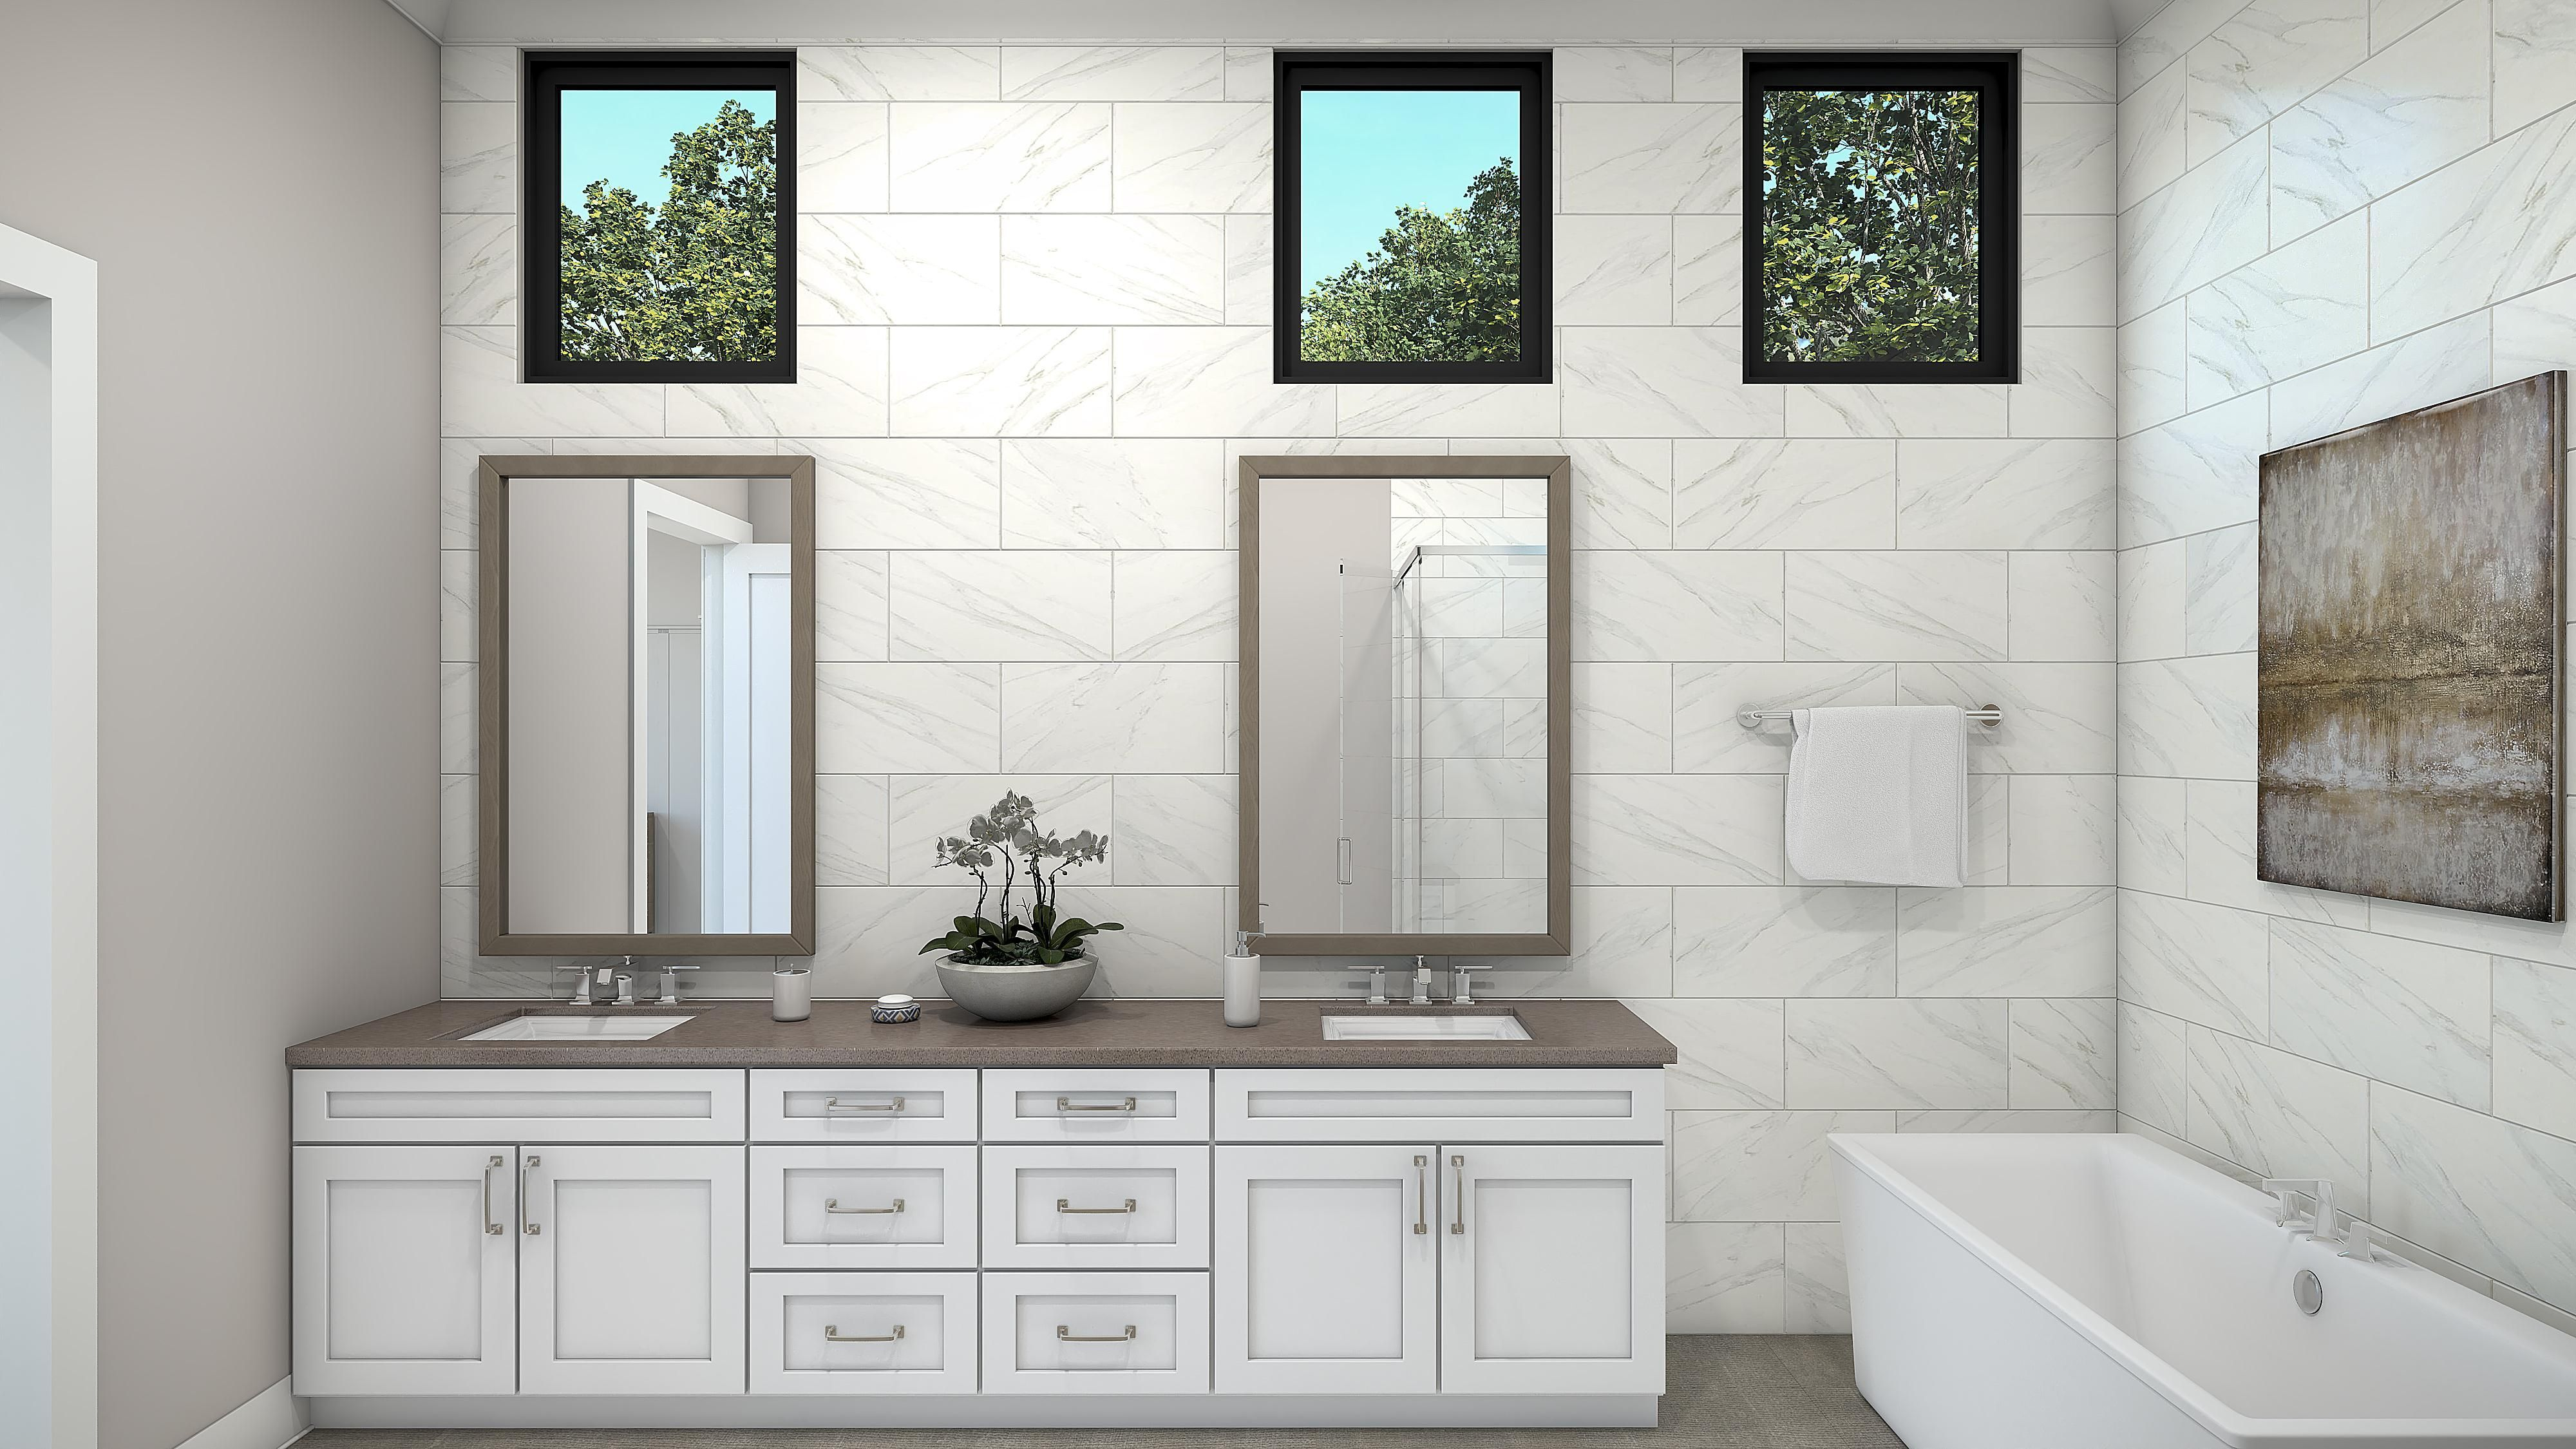 Bathroom featured in the Plan 3-B By Copper Valley  in Stockton-Lodi, CA